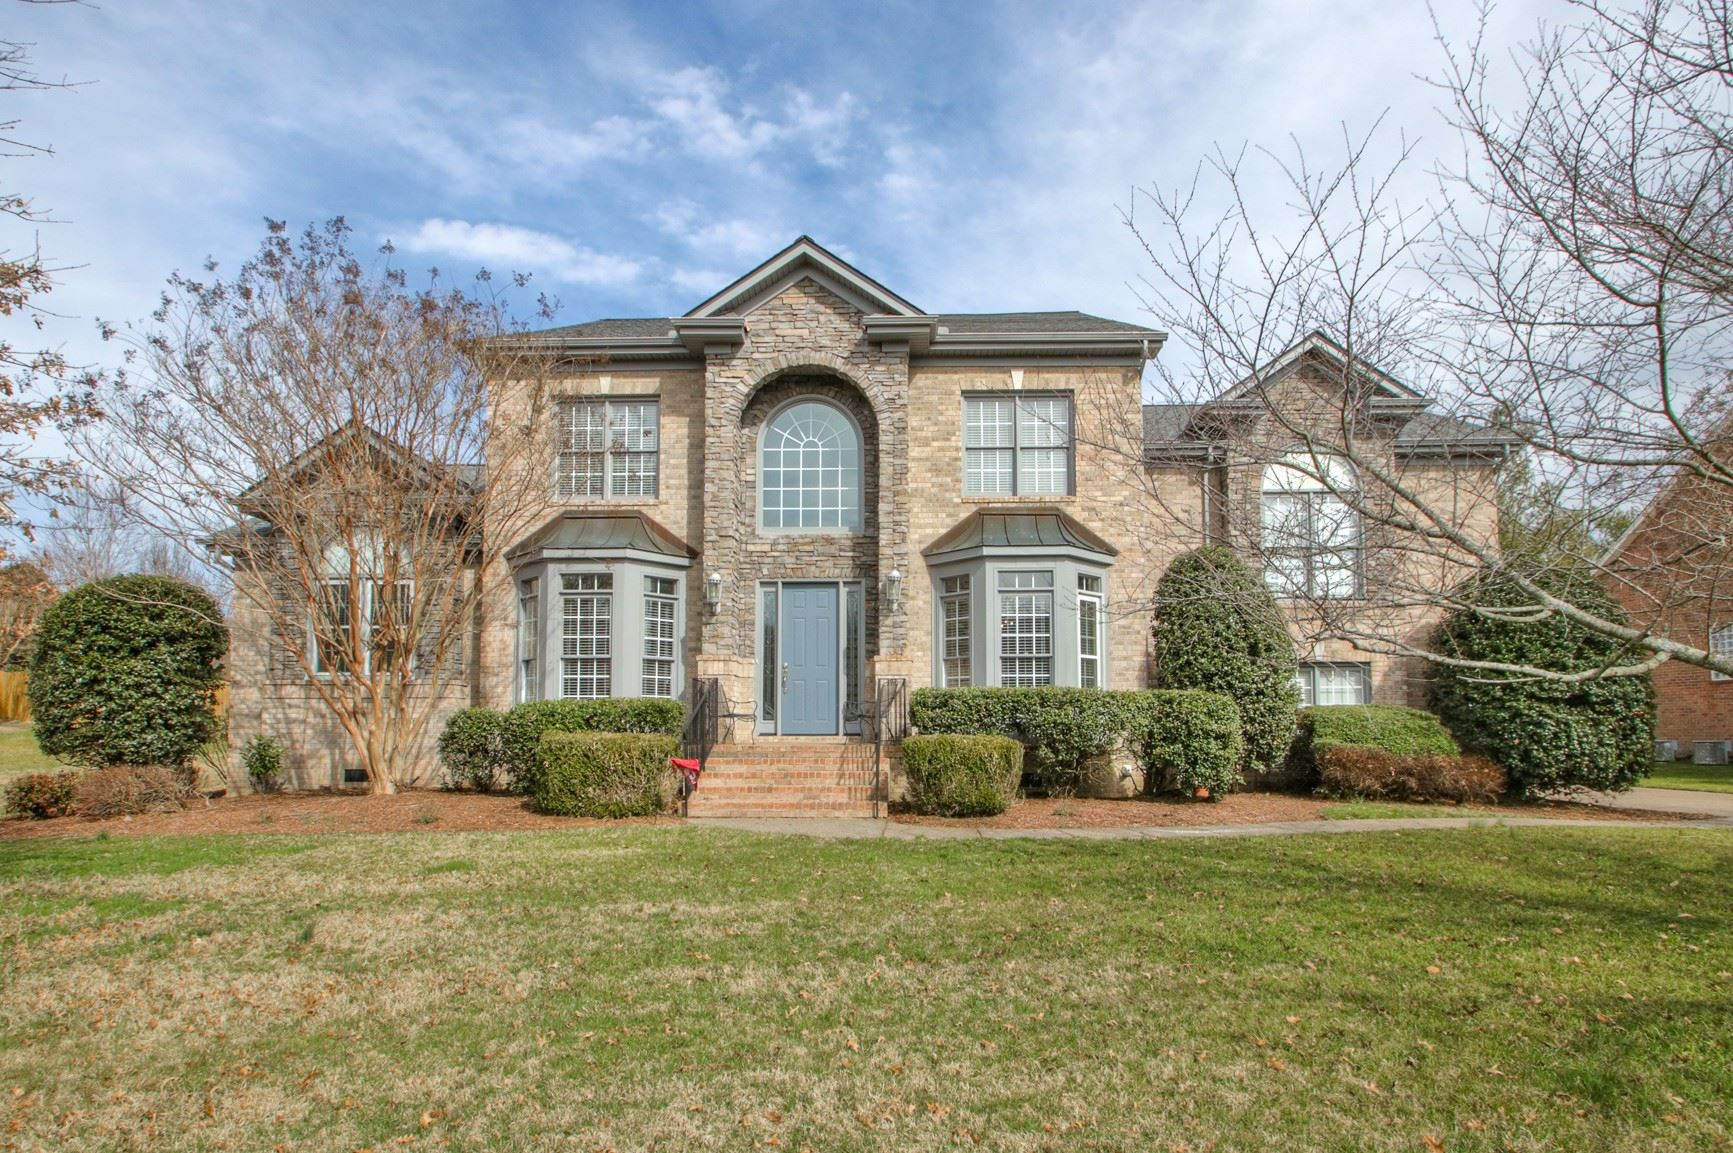 Photo of 1814 Grey Pointe Dr, Brentwood, TN 37027 (MLS # 2232027)